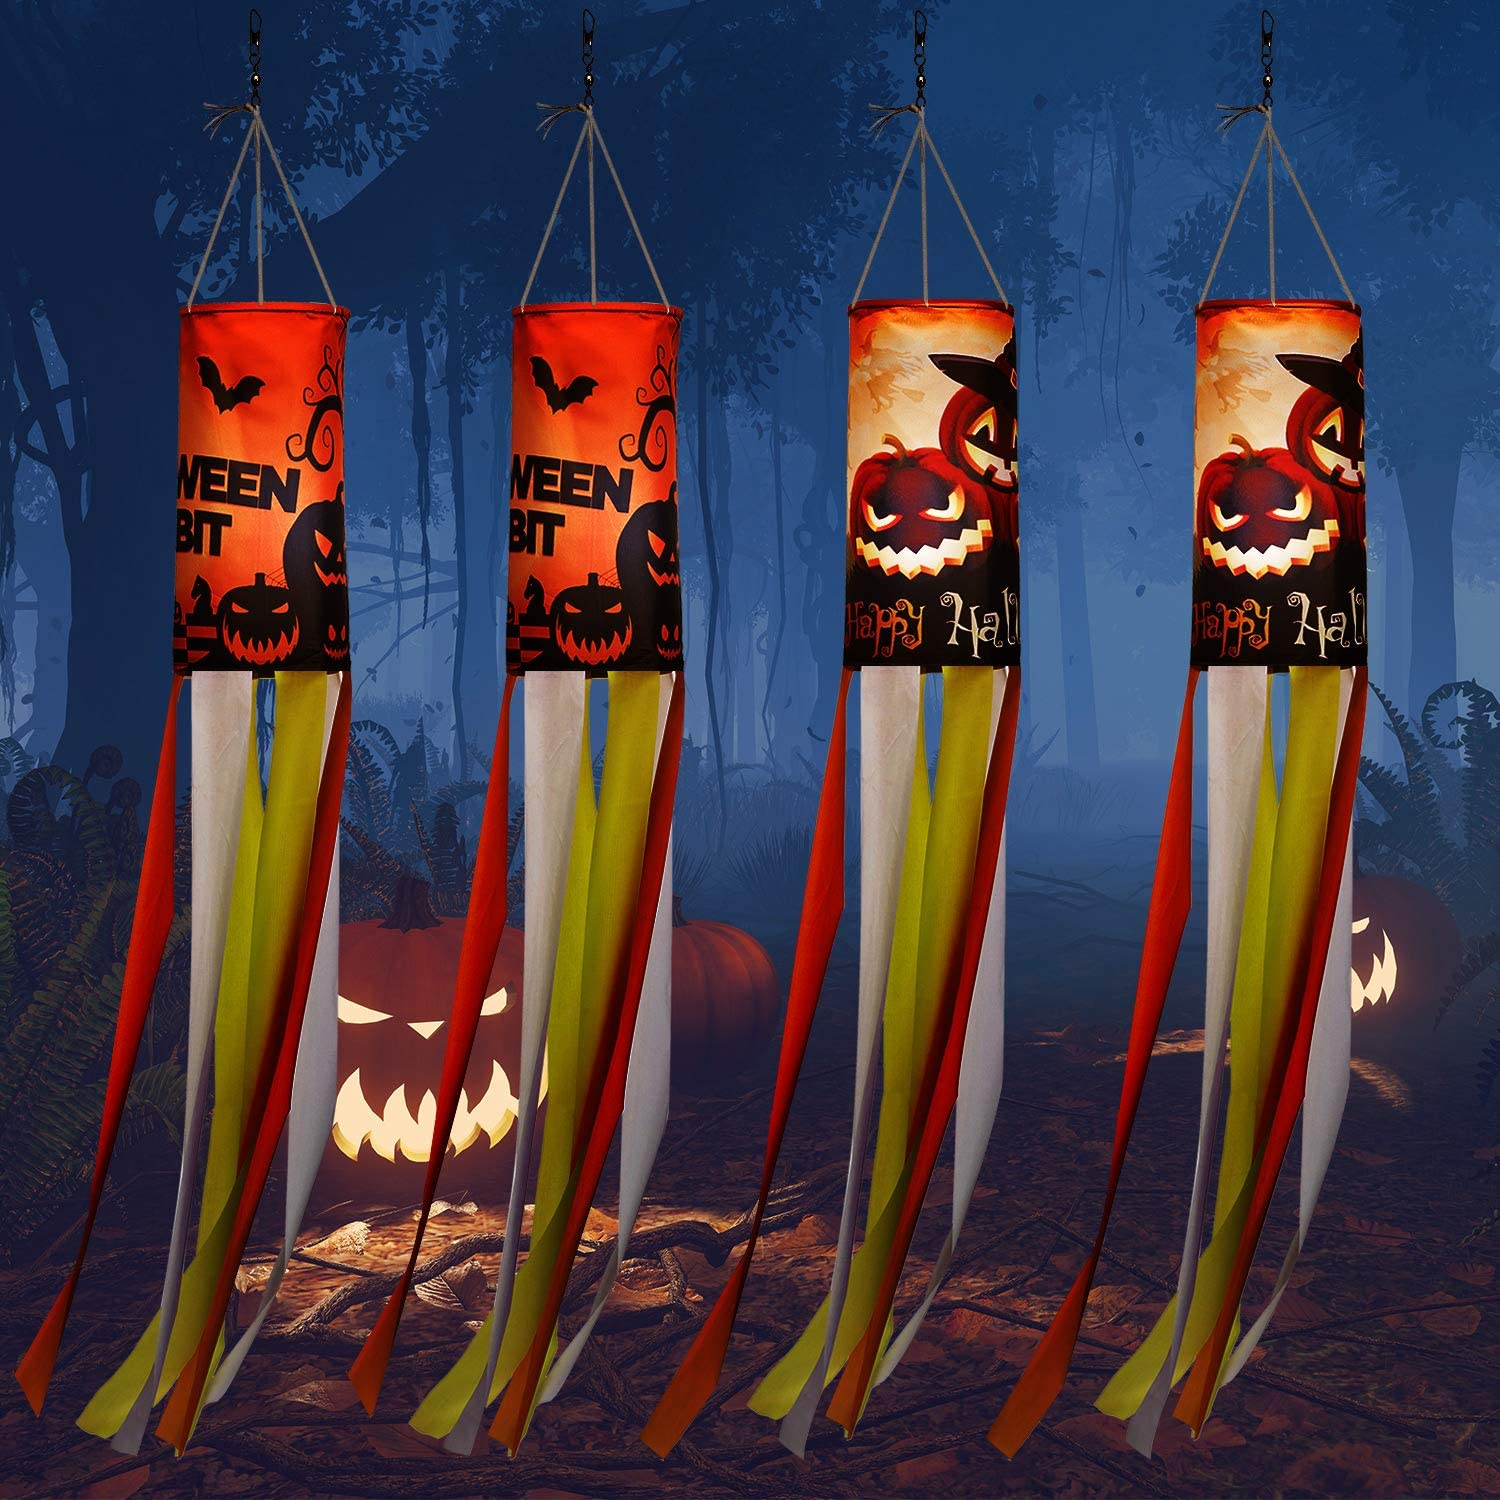 WILLBOND 4 Pieces 40 Inch Halloween Pumpkin Ghost Windsock Flag Outdoor Hanging Decoration Large Halloween Theme Garden Windsock for Front Yard Patio Lawn Party Decor, 2 Styles